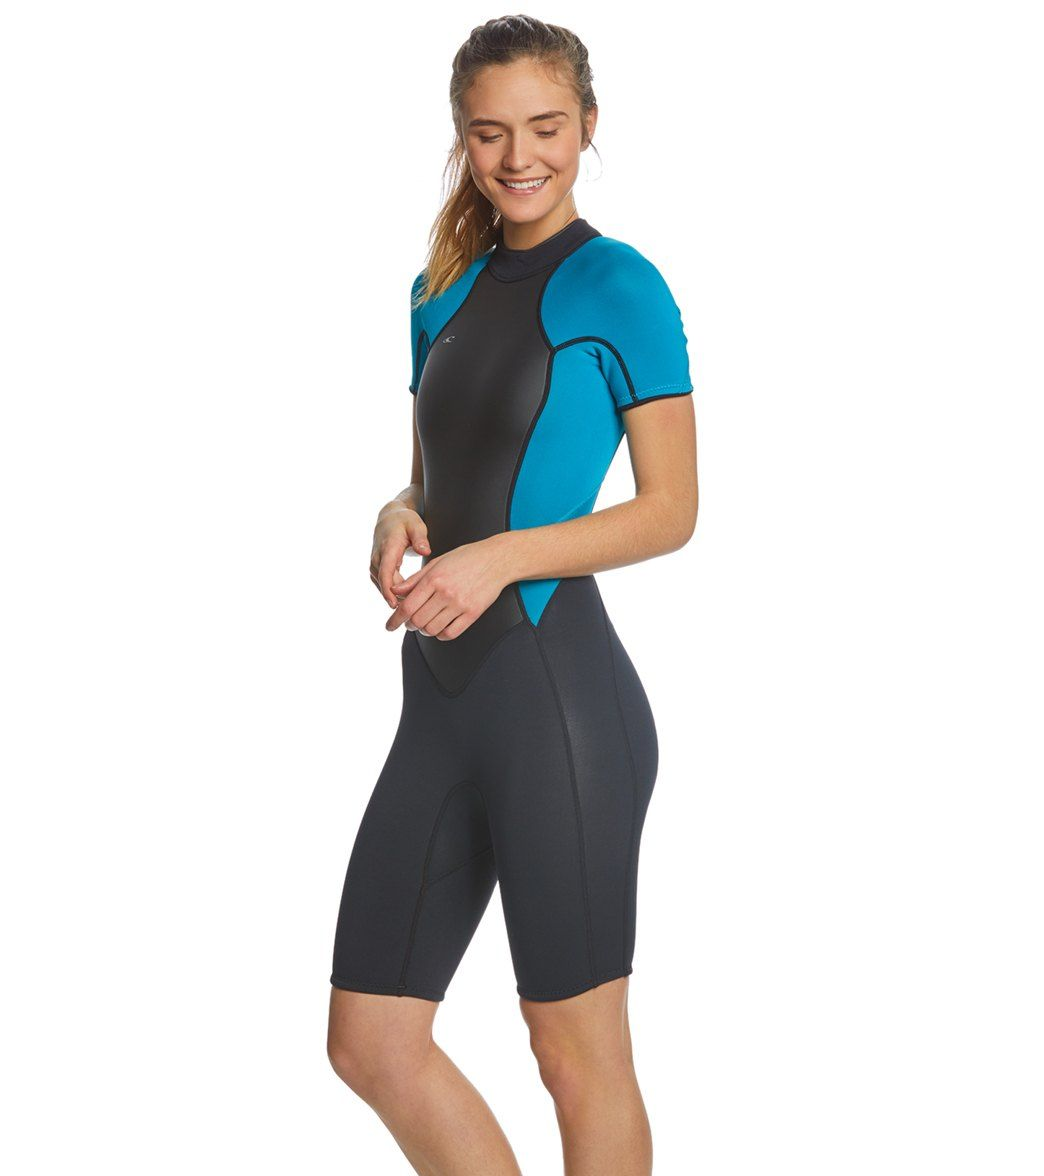 O Neill Women s 2 1MM Bahia Short Sleeve Springsuit Wetsuit at  SwimOutlet.com - Free Shipping fbb517275